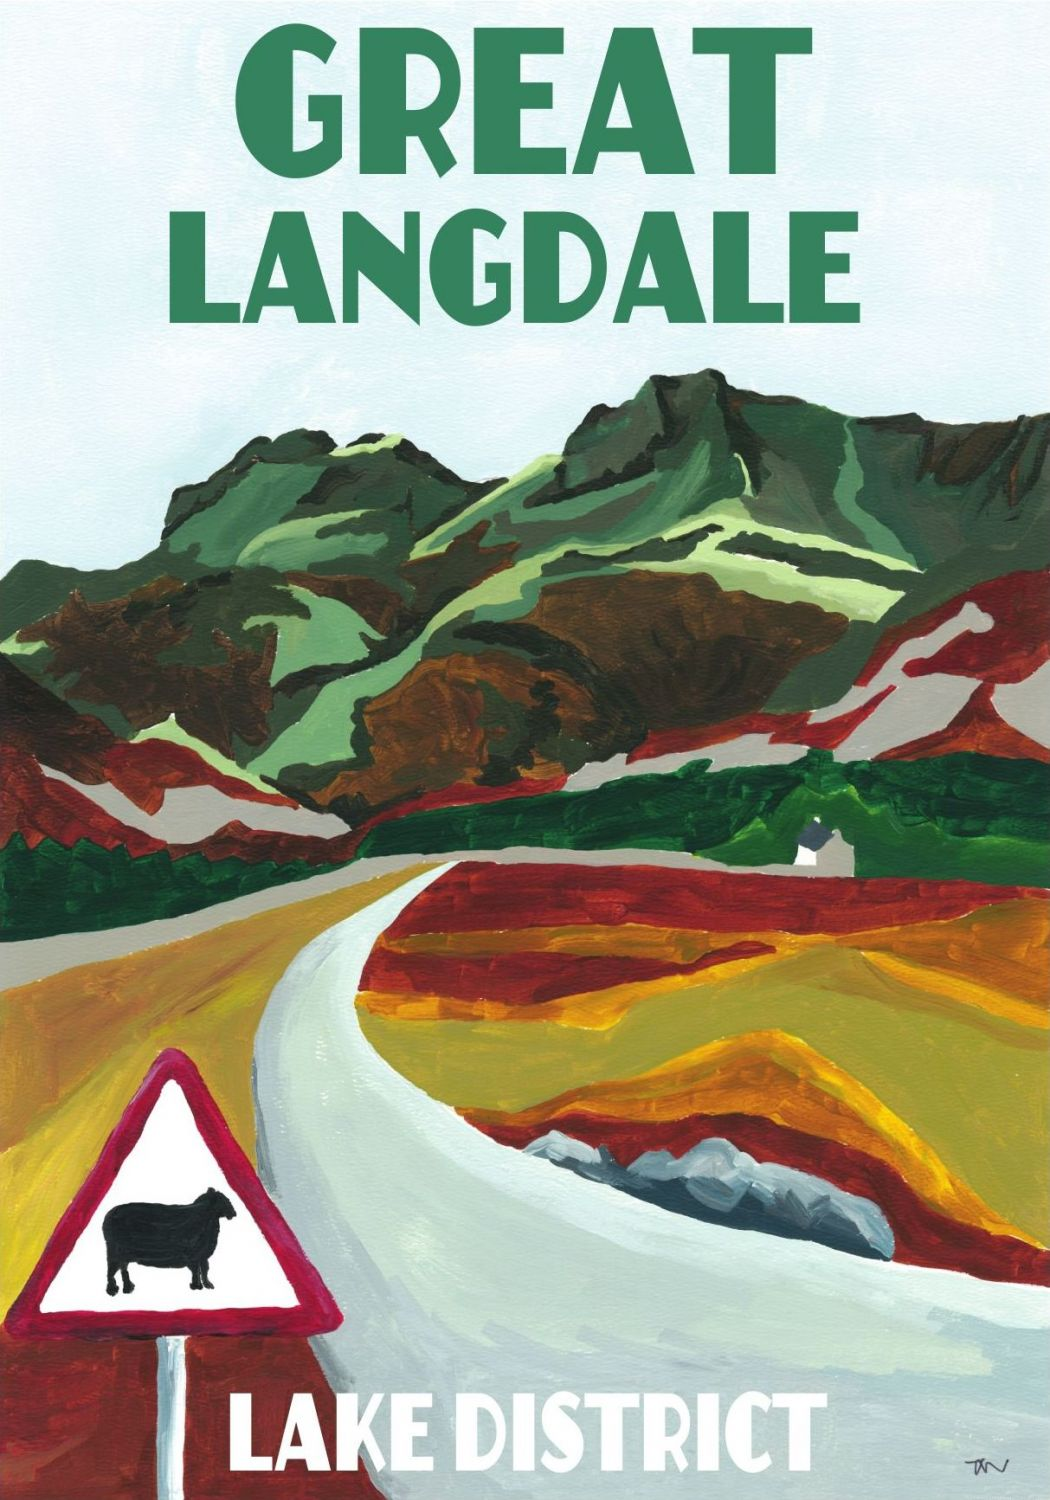 Great Langdale, Cumbria. Lake District A3 Posters painted by Artist Jo Witherington.